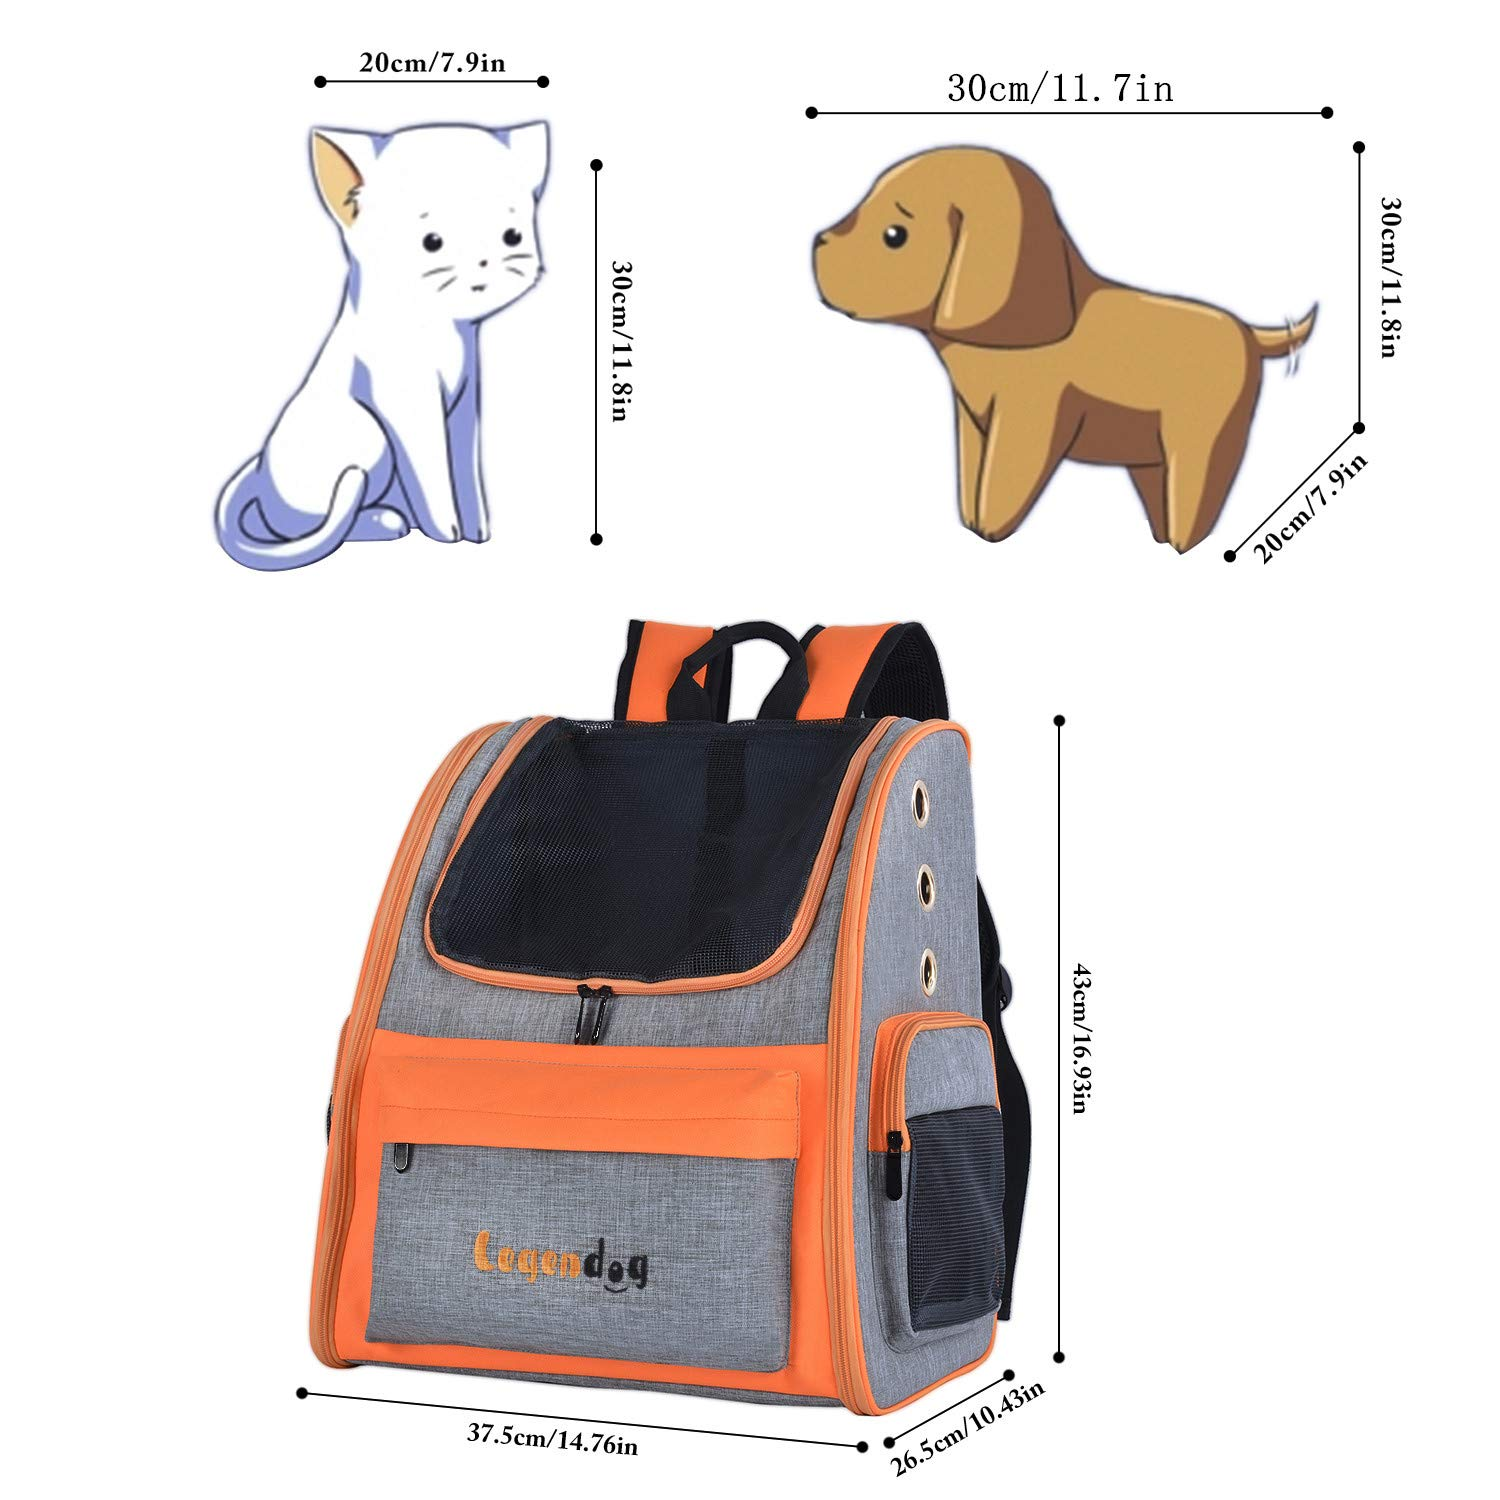 Legendog Dog Backpack, Pet Backpack Carrier Portable Travel Bag Breathable Pet Backpack for Dogs& Cats, Waterproof Cat Hiking Backpack with Cushion & Adjustable Strap (Pet Backpack)